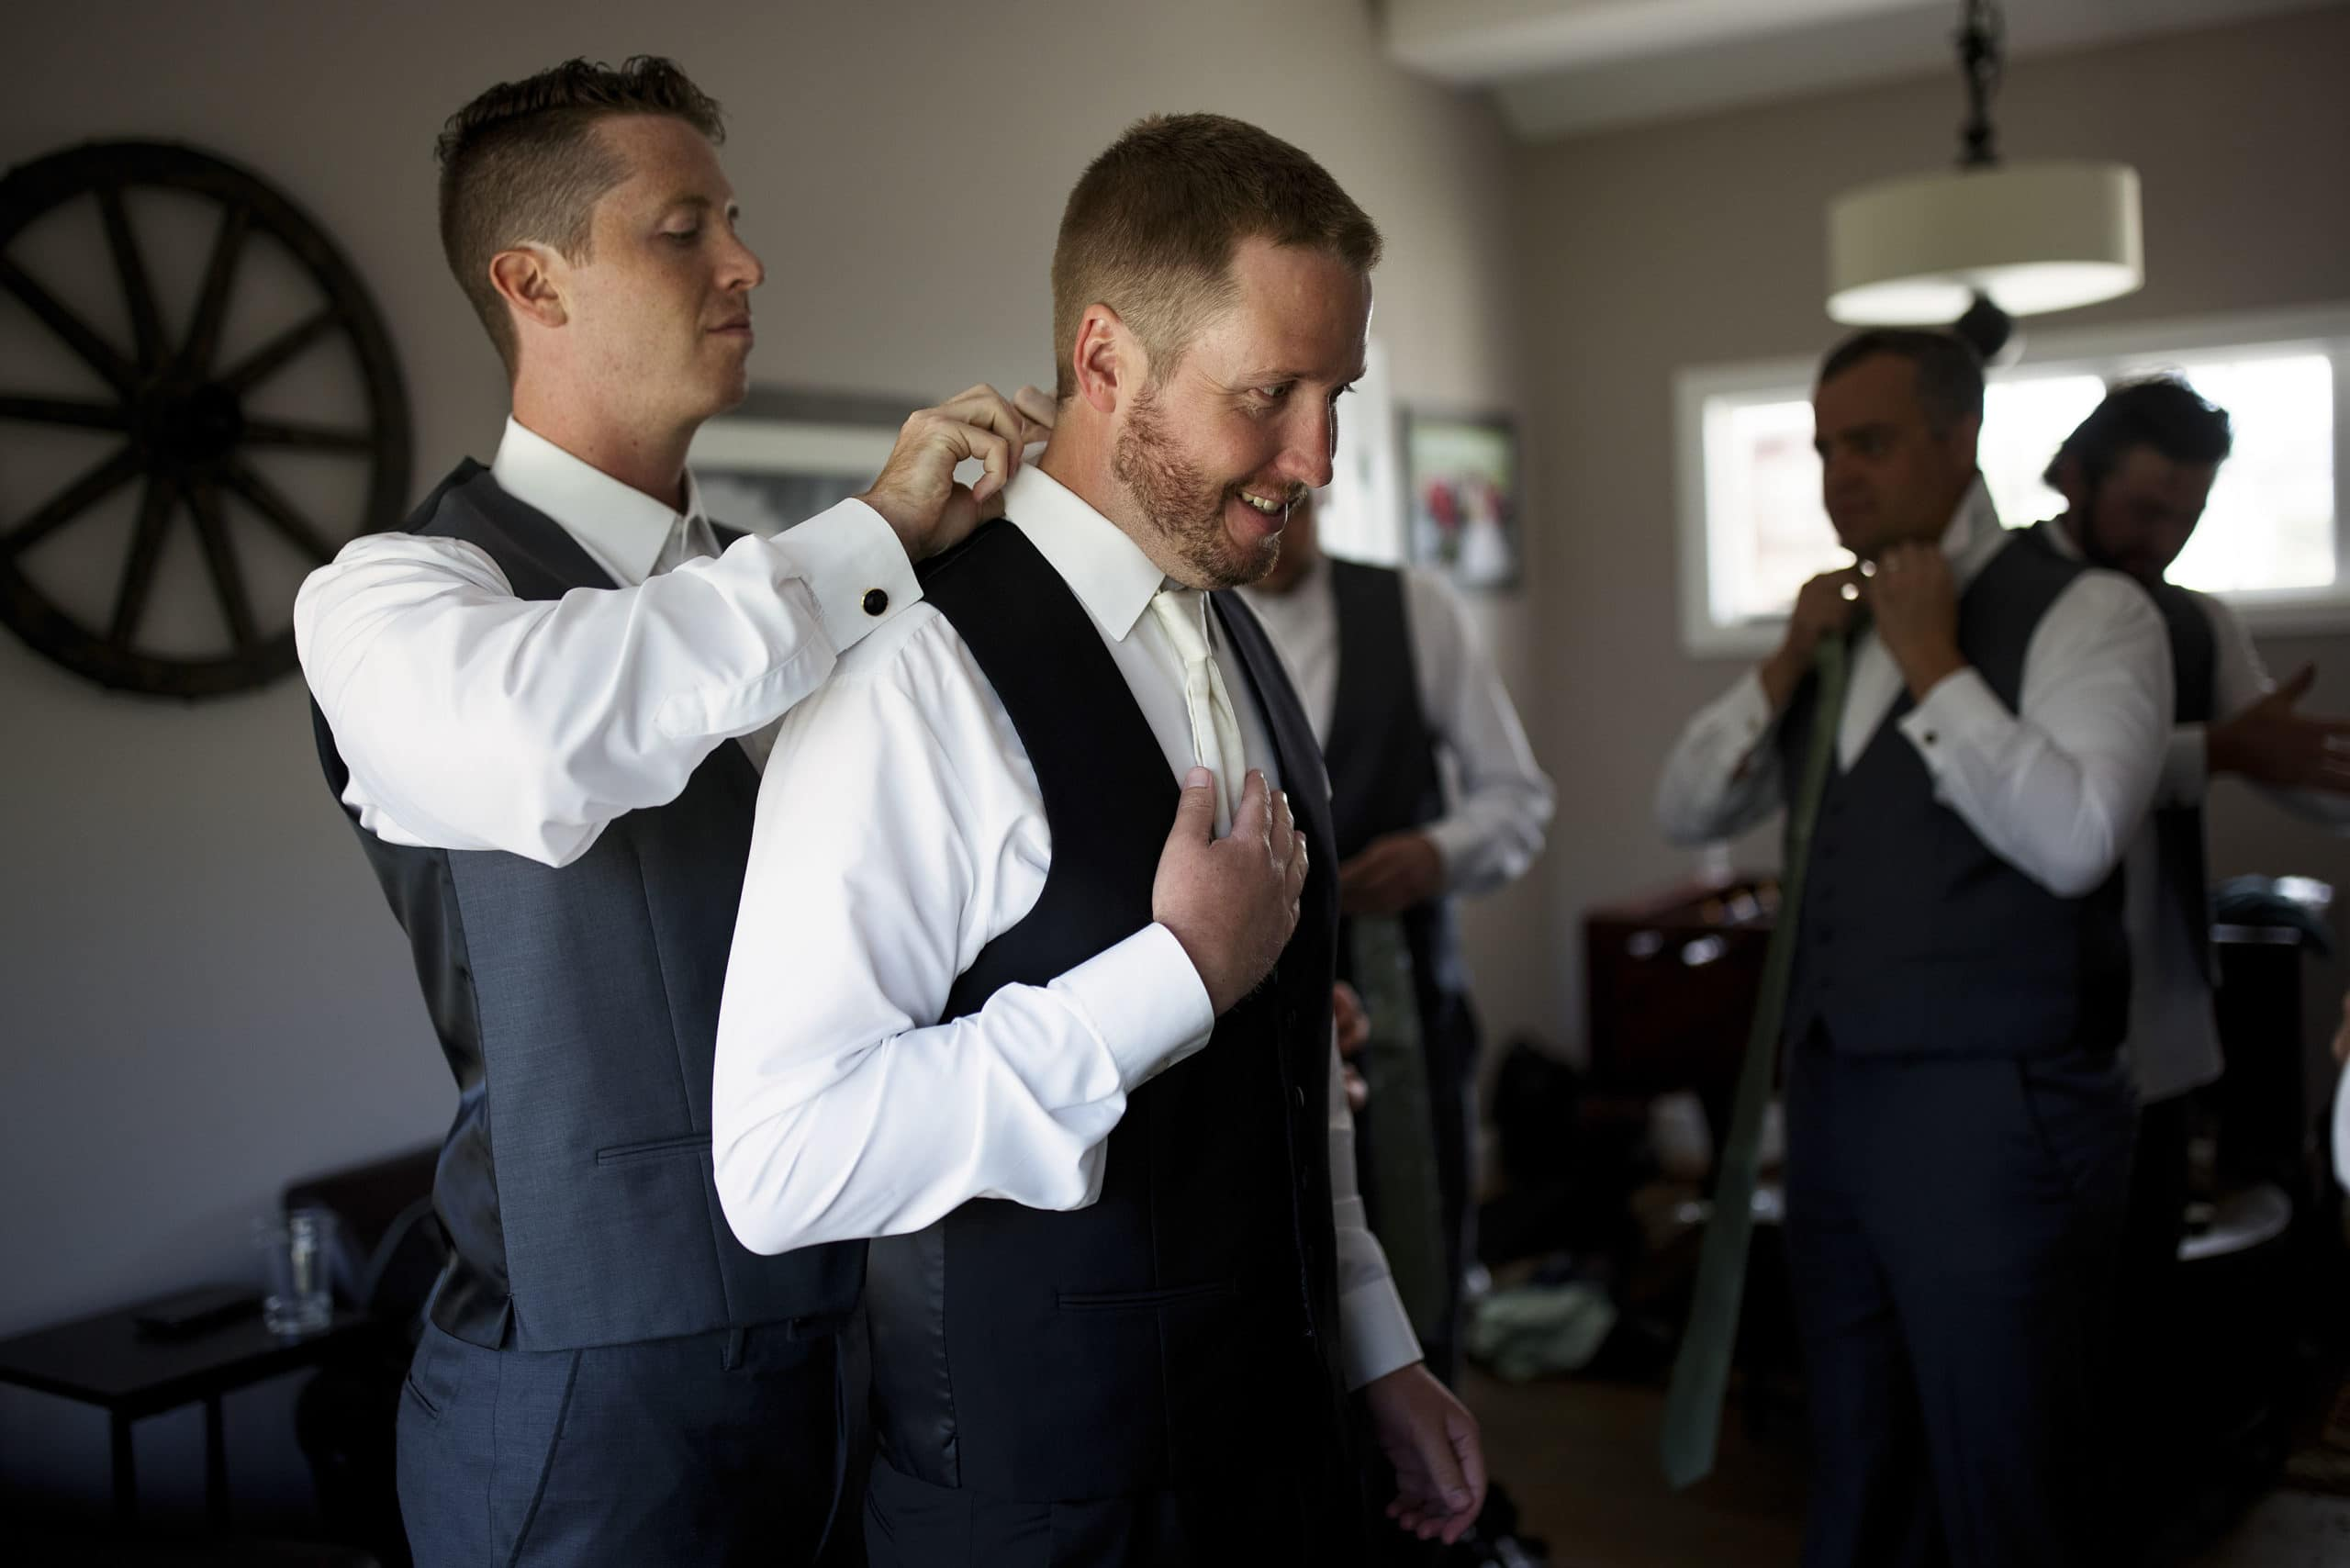 Stefan gets help with his tie while getting ready before the wedding